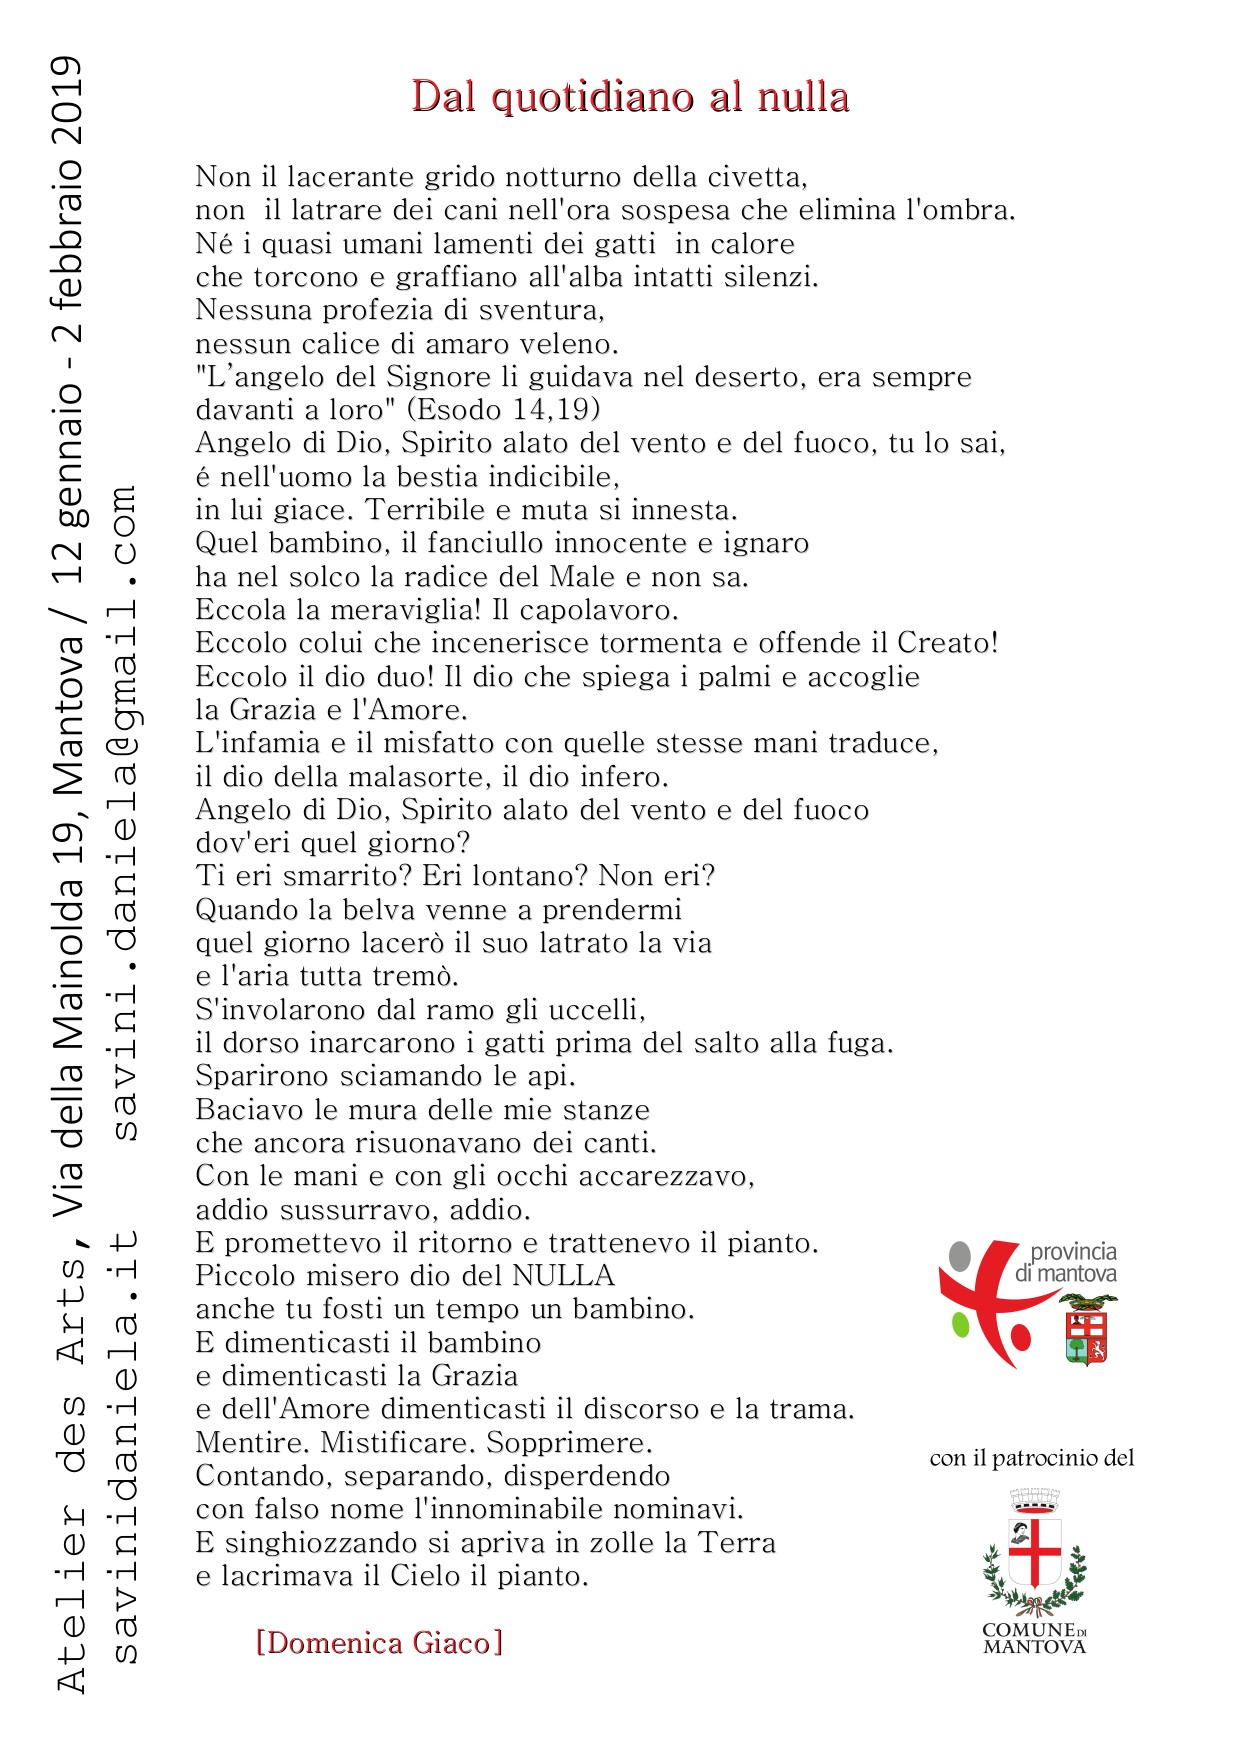 cartolina dal quotidiano al nulla p.2